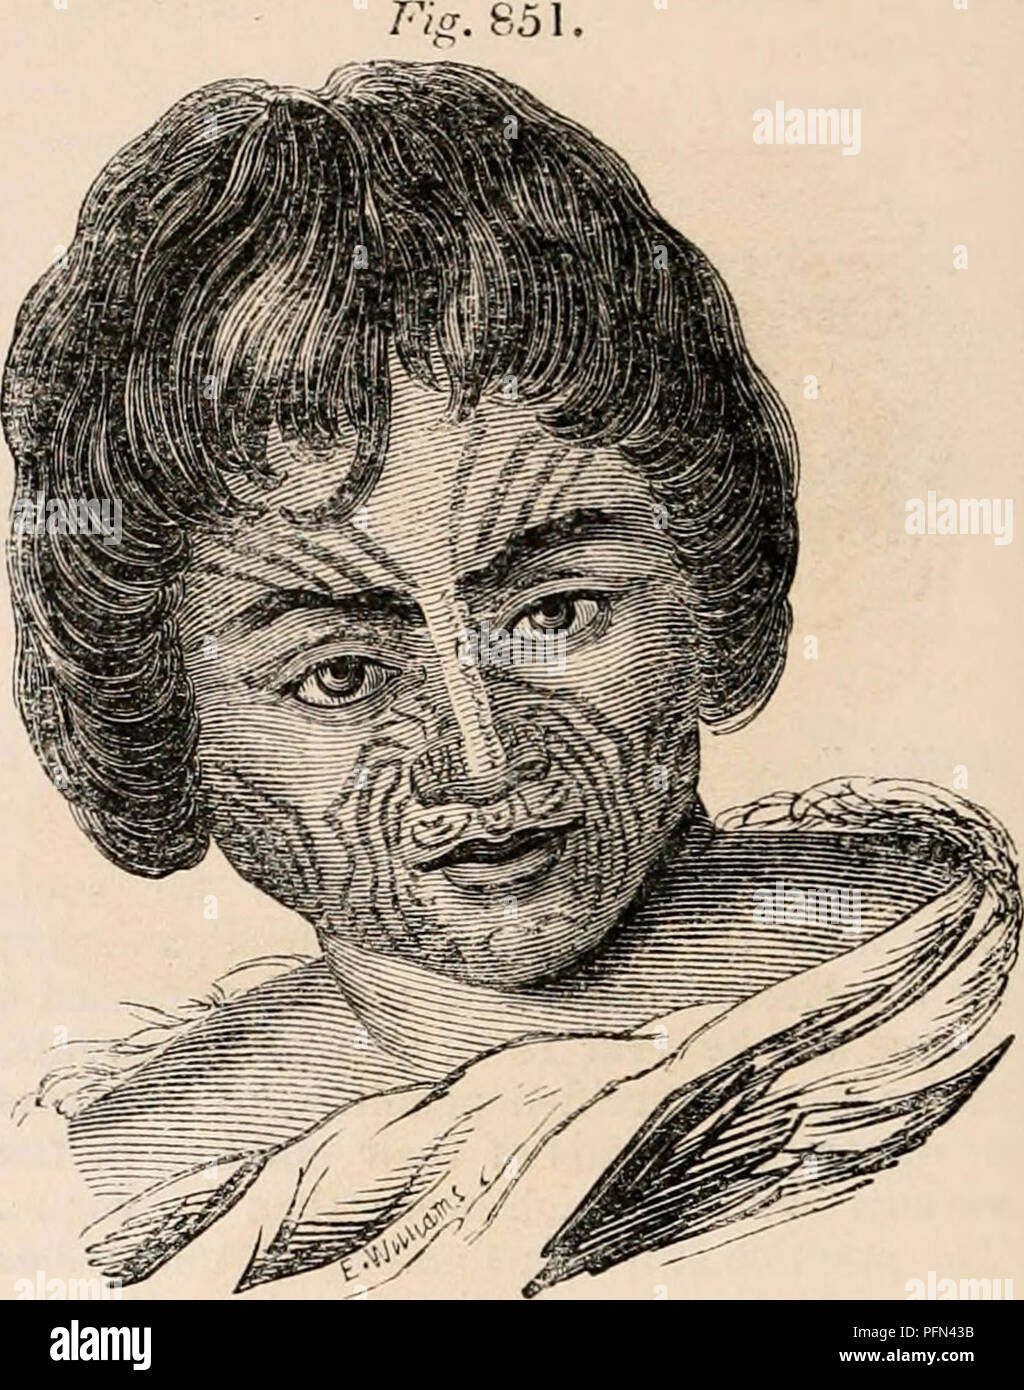 """. The cyclopædia of anatomy and physiology. Anatomy; Physiology; Zoology. Tahltian Female. (From a portrait by an officer of """" L'Artemise."""") plexion, especially in the females of the higher classes, who are sheltered from the wind """"and sun, is of a clear olive, or brunette, such as is common among the natives of Southern Eu- rope; and the hair, though generally black, is sometimes brown or auburn, or even red or flaxen. Among other tribes, as the Sandwich Islanders, the New Zealanders, and the Ton^a and _ Friendly islanders, there are greater cTi- versities of hue and conformati - Stock Image"""